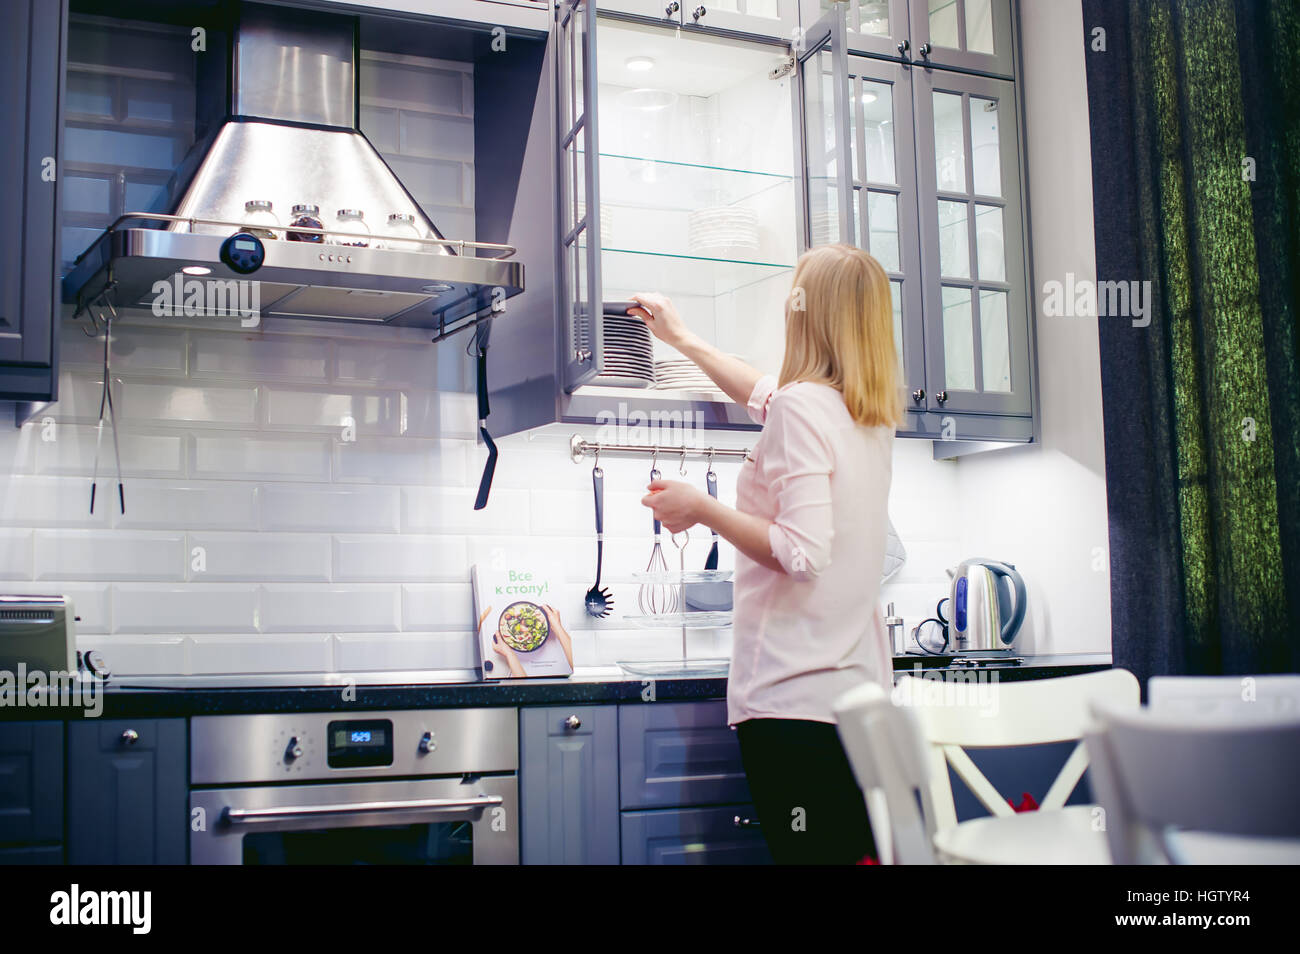 woman housewife in the kitchen. girl pulls out from the shelf cupboard dishes for table service. - Stock Image